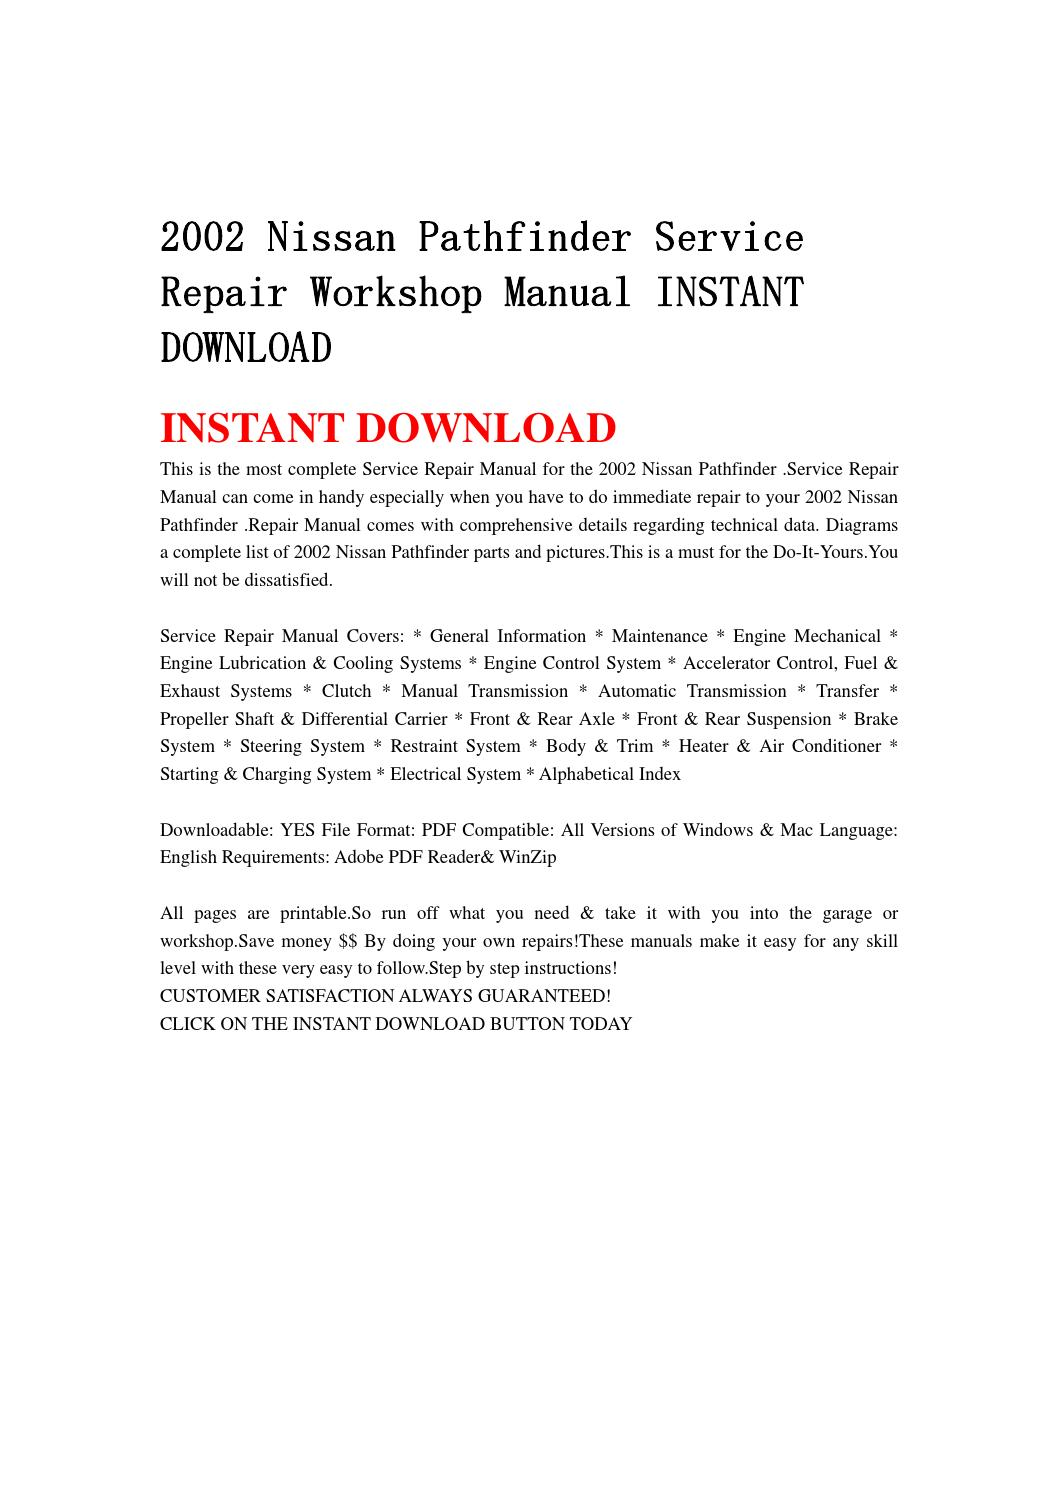 2002 nissan pathfinder service repair workshop manual instant download by  8hsjfnshen - issuu